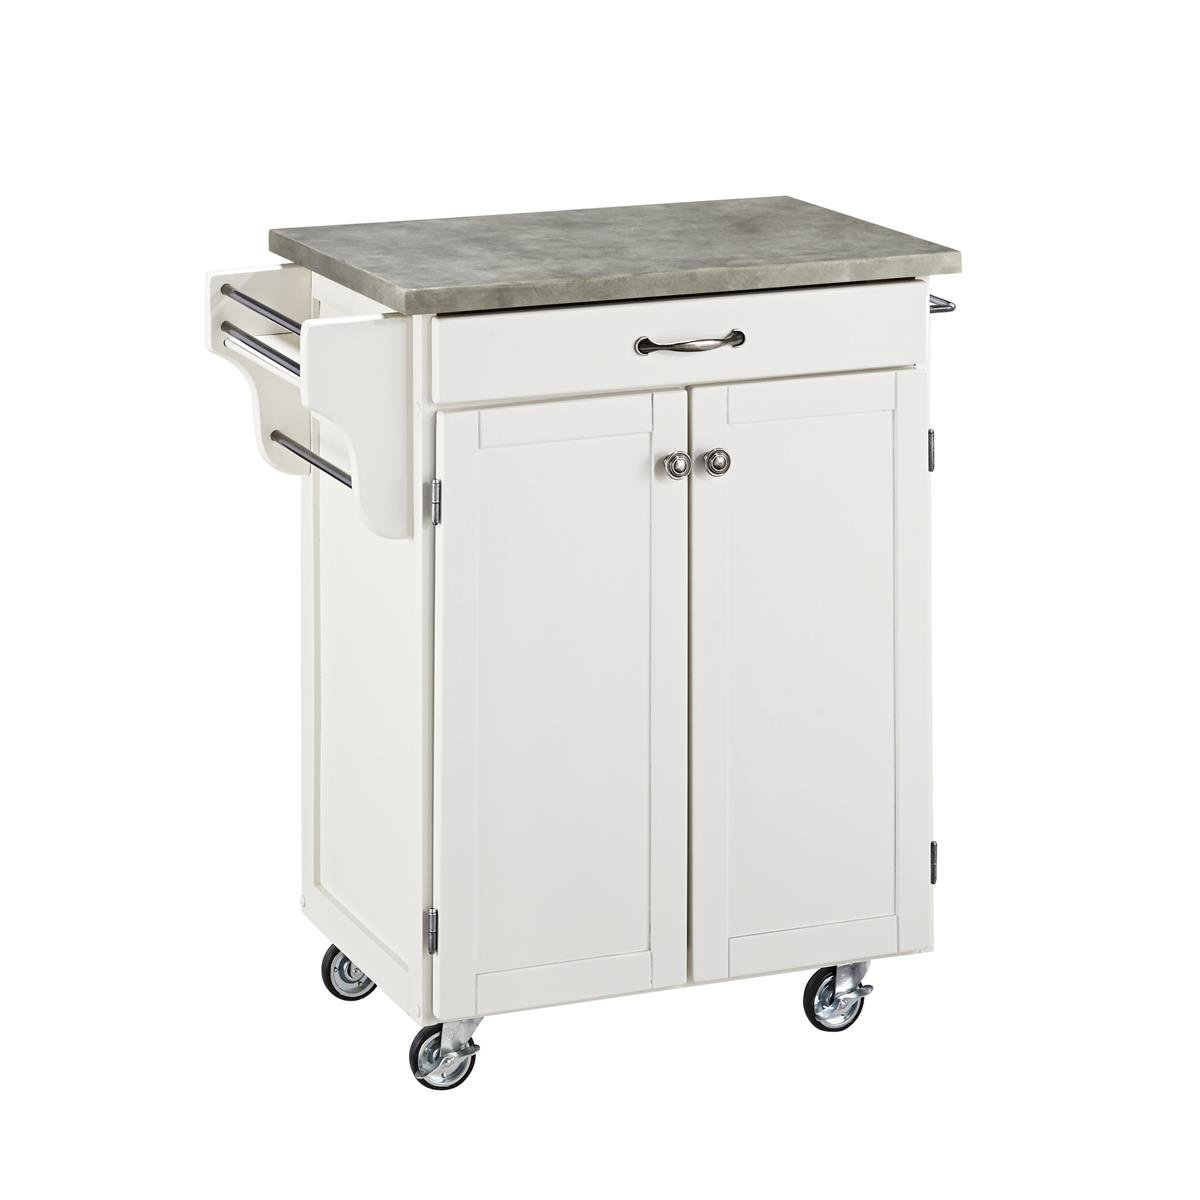 Home Styles Cuisine Cart with Concrete Top, White/Gray